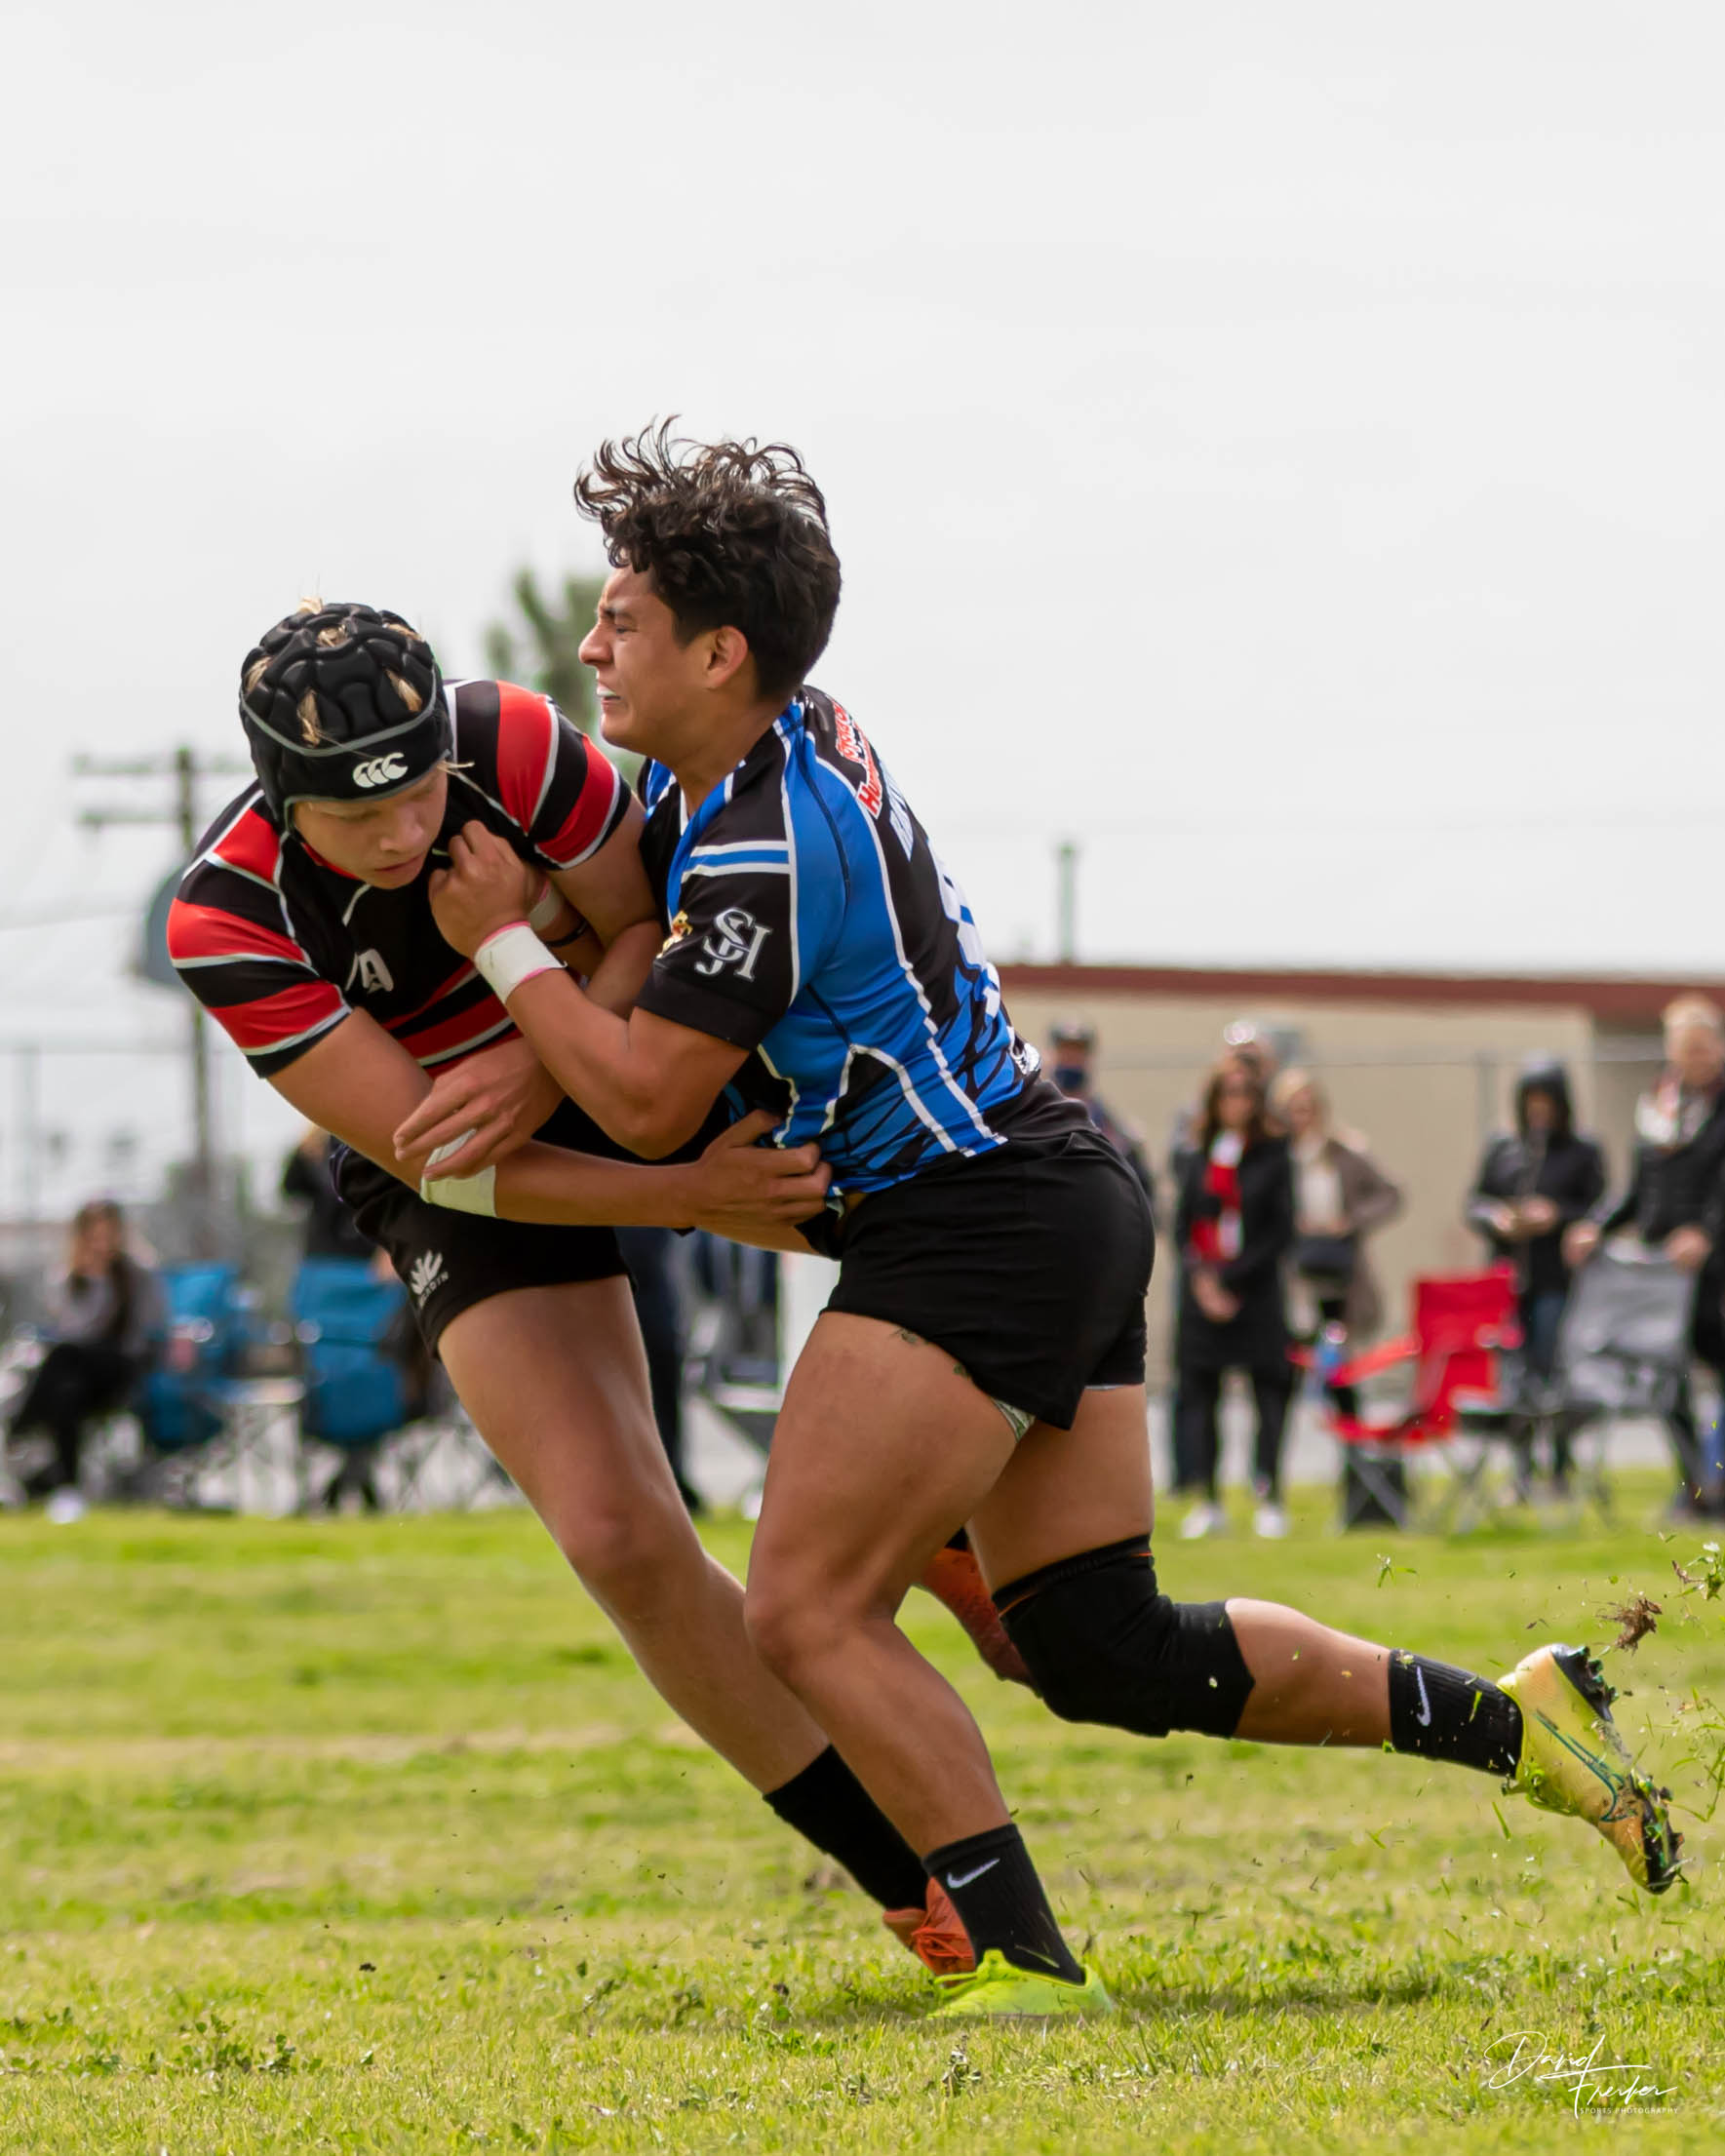 LaJollaRugby90